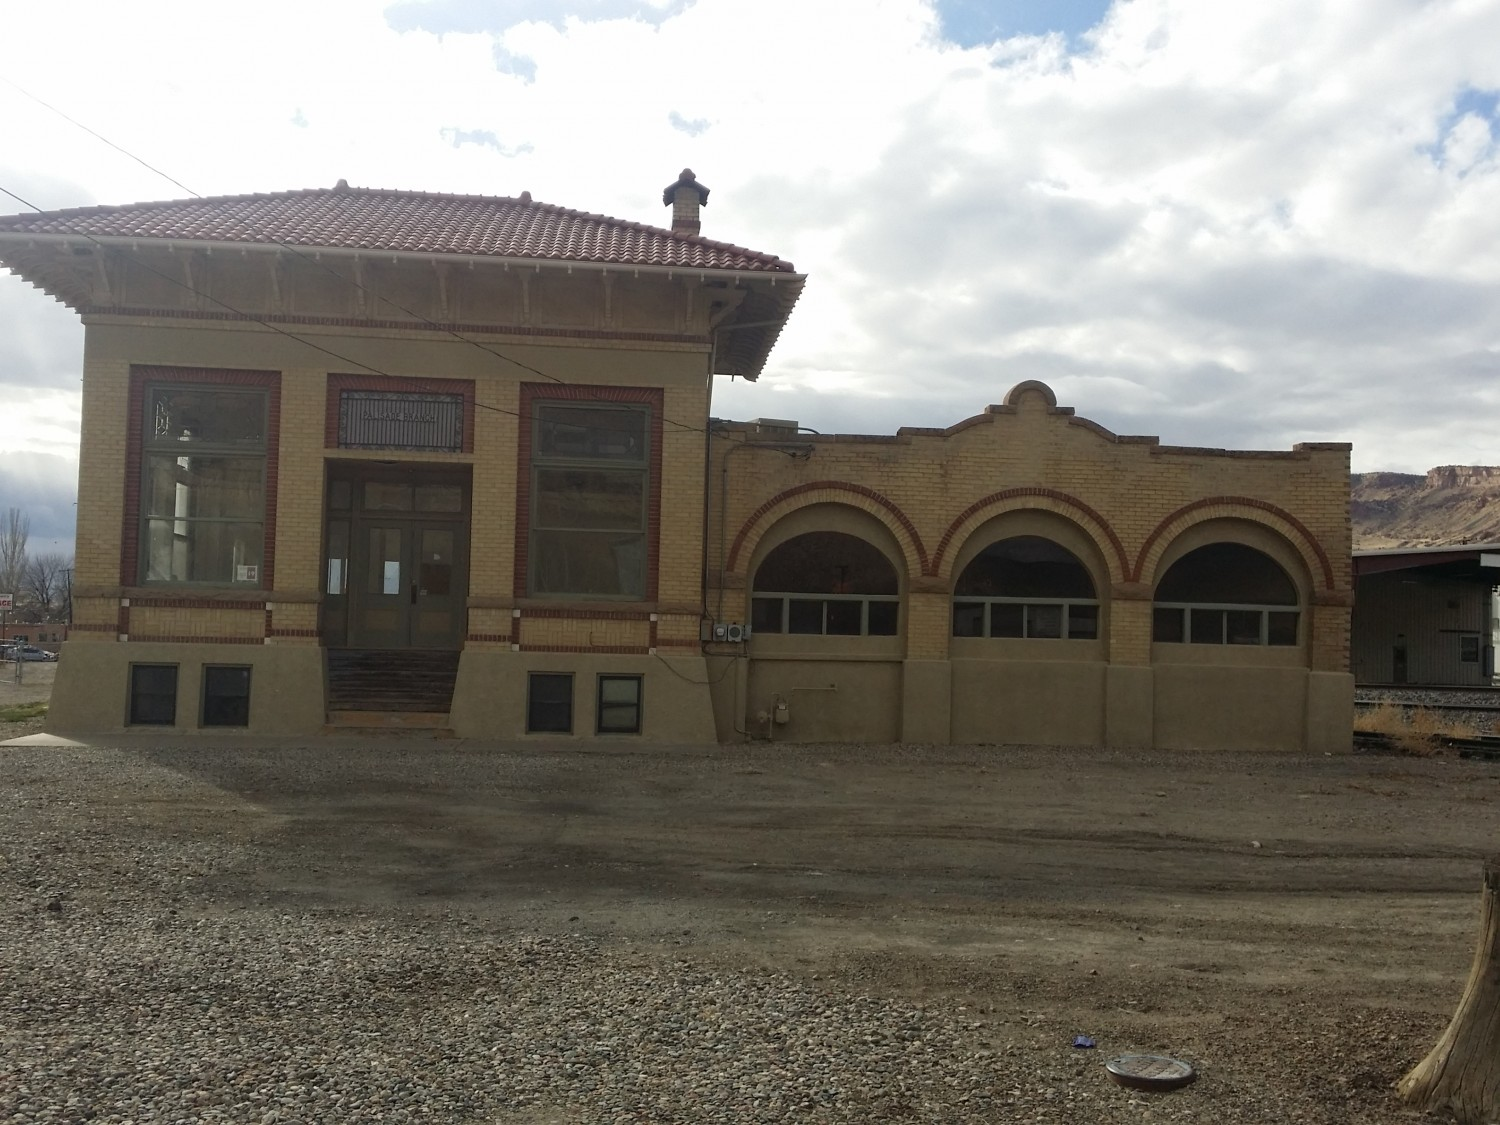 The old Mountain Lion Fruit Company building may come to life again soon as a Wine Bar and museum. Photo by Betsy McLaughlin